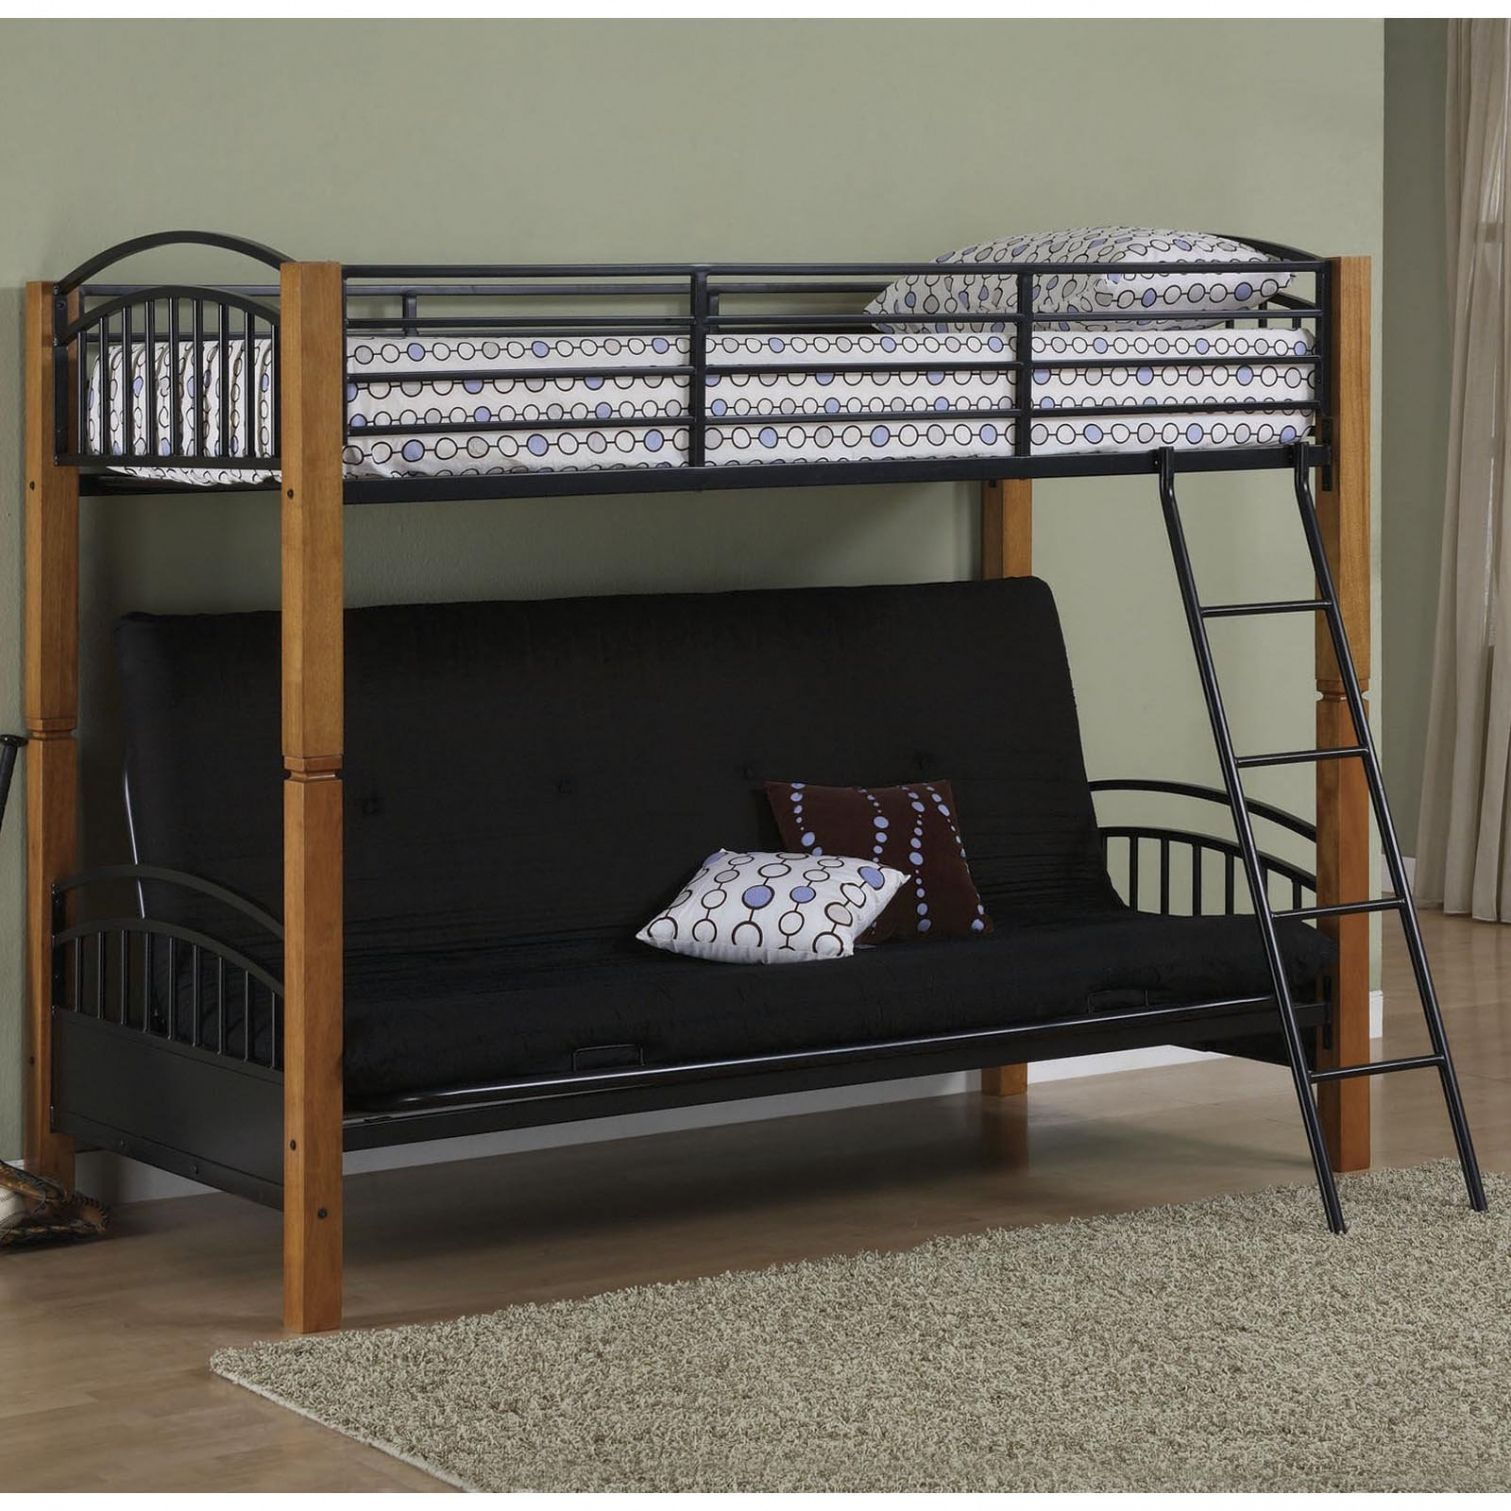 Futon Bunk Bed Plans And Posts You Plan To Waterbeds For Kids Room The Free Encyclopedia Shelves Make Up Diy Wall Under 150 Is